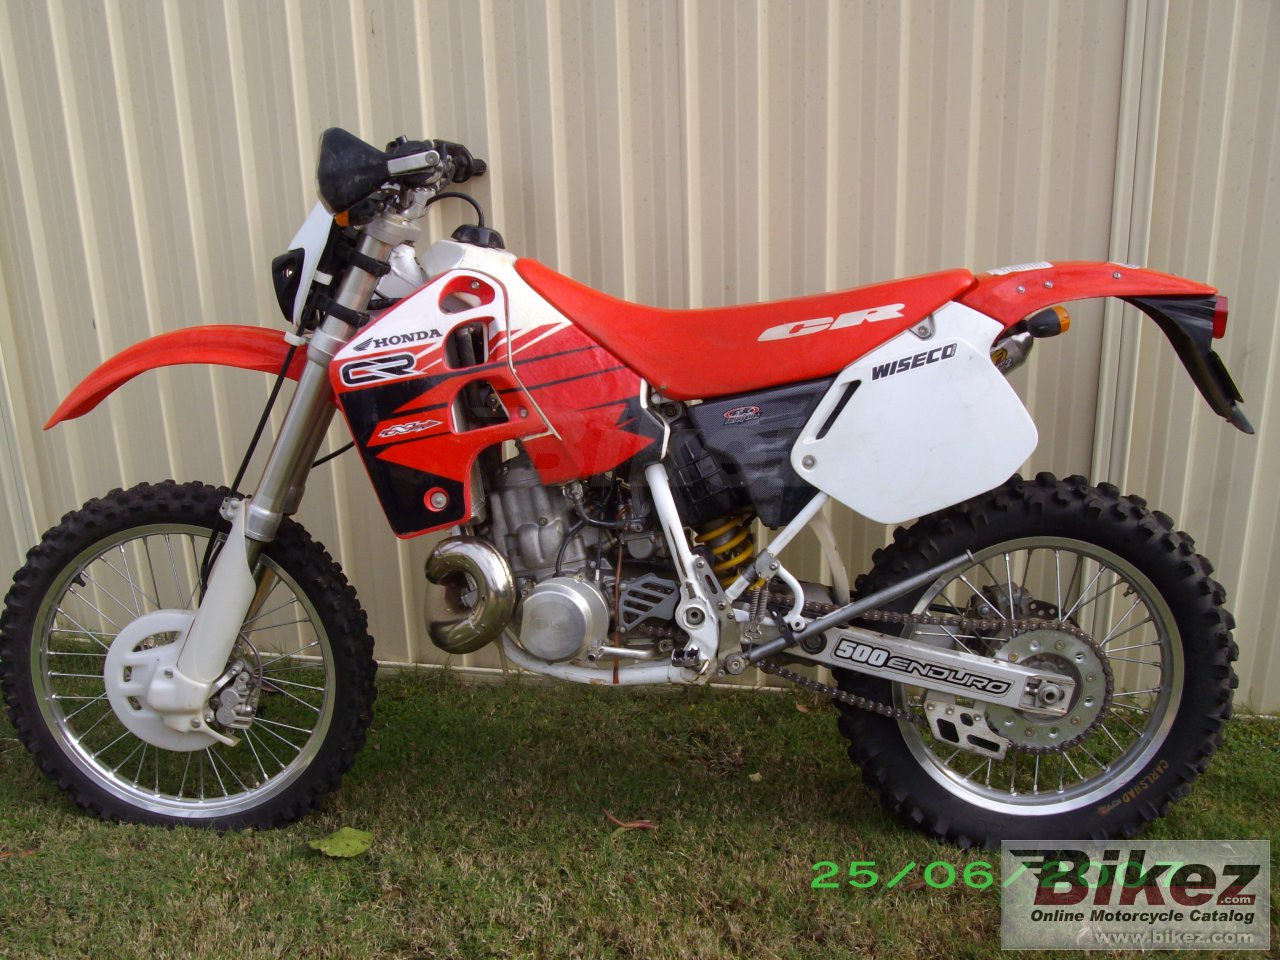 Big  cr 500 e picture and wallpaper from Bikez.com